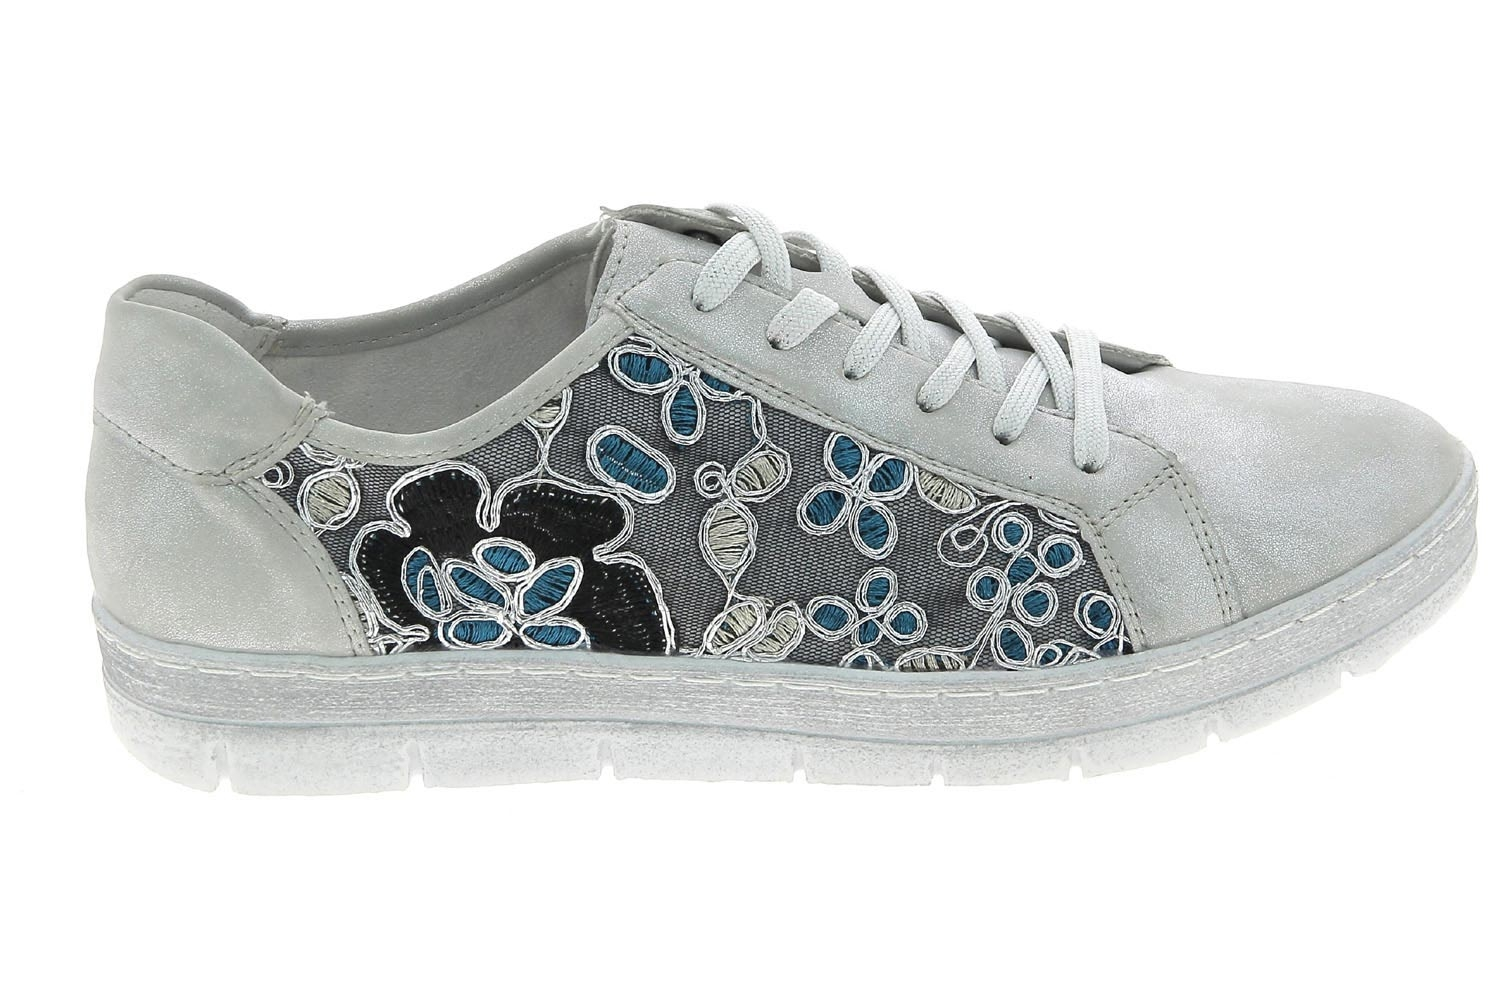 Chaussures Chaussures argent plates remonte plates remonte 5K1ul3TFJc